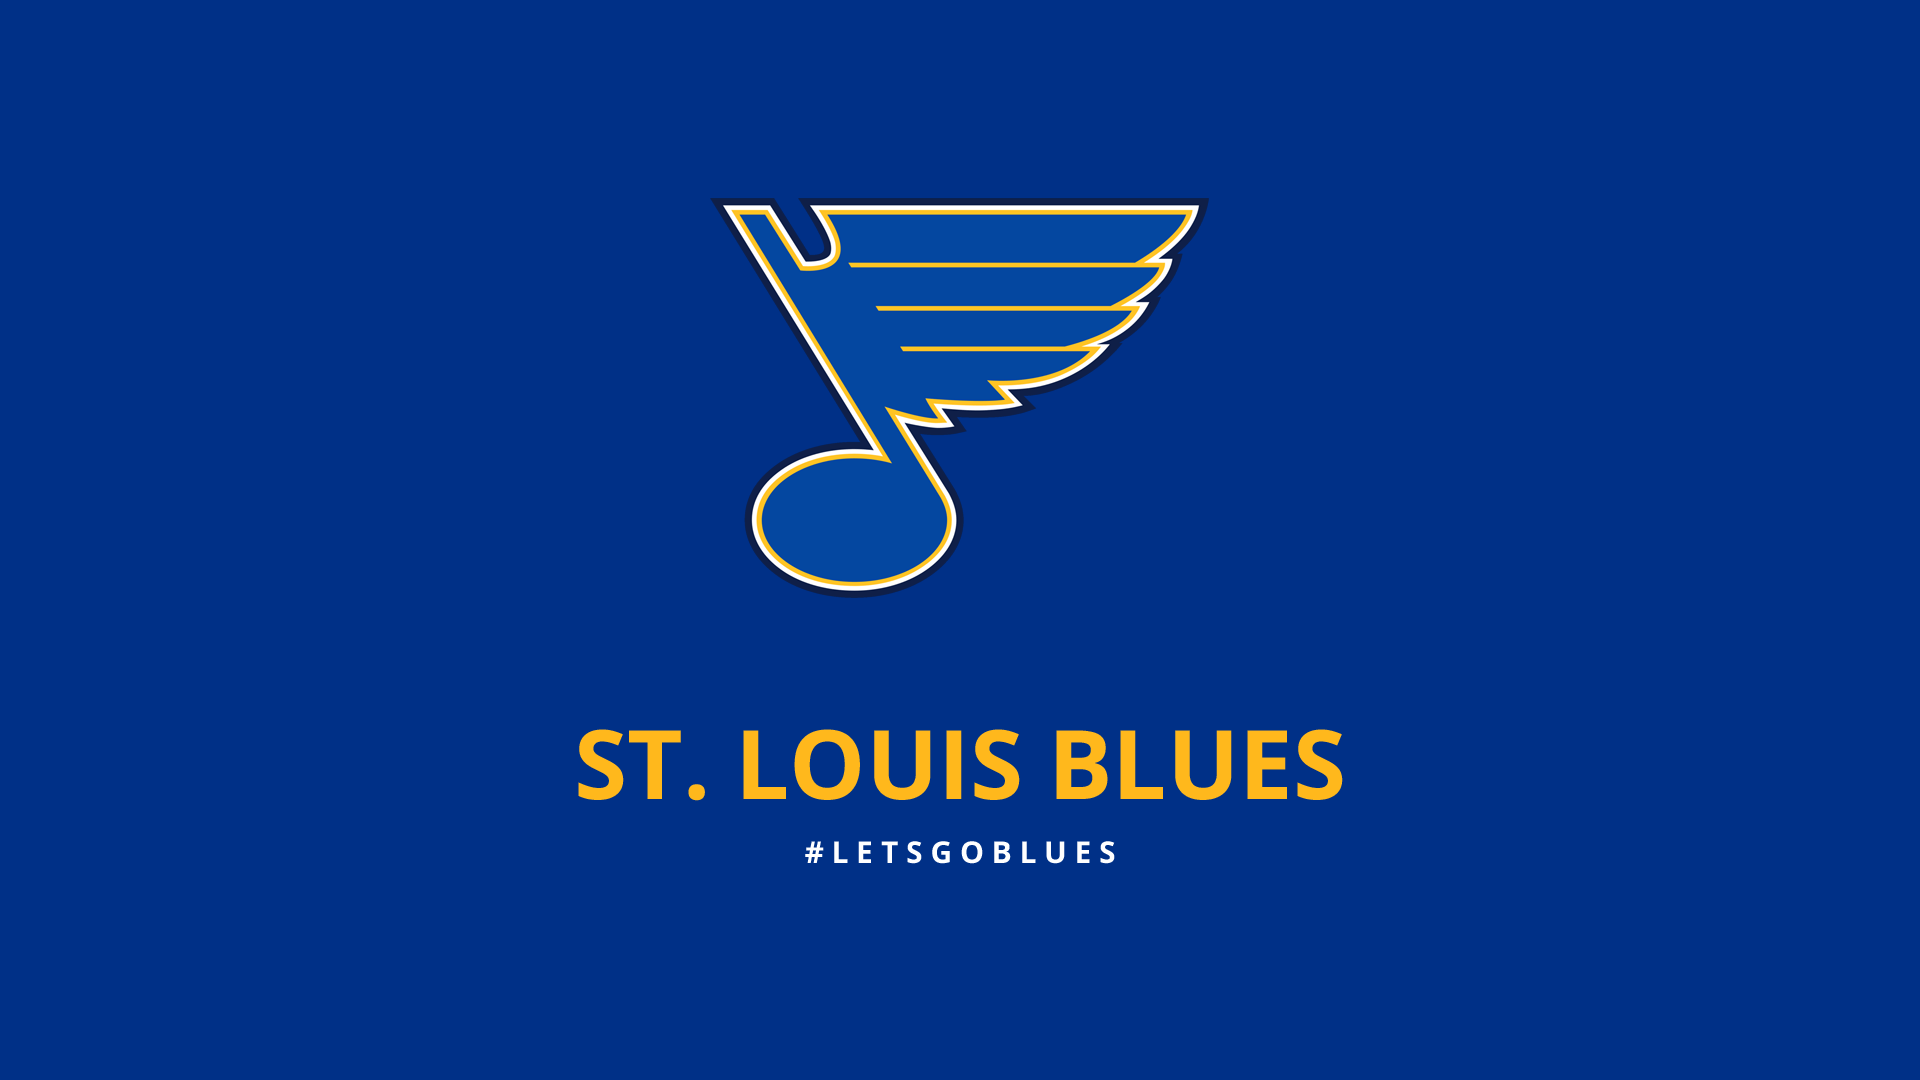 Minimalist St Louis Blues wallpapers by lfiore